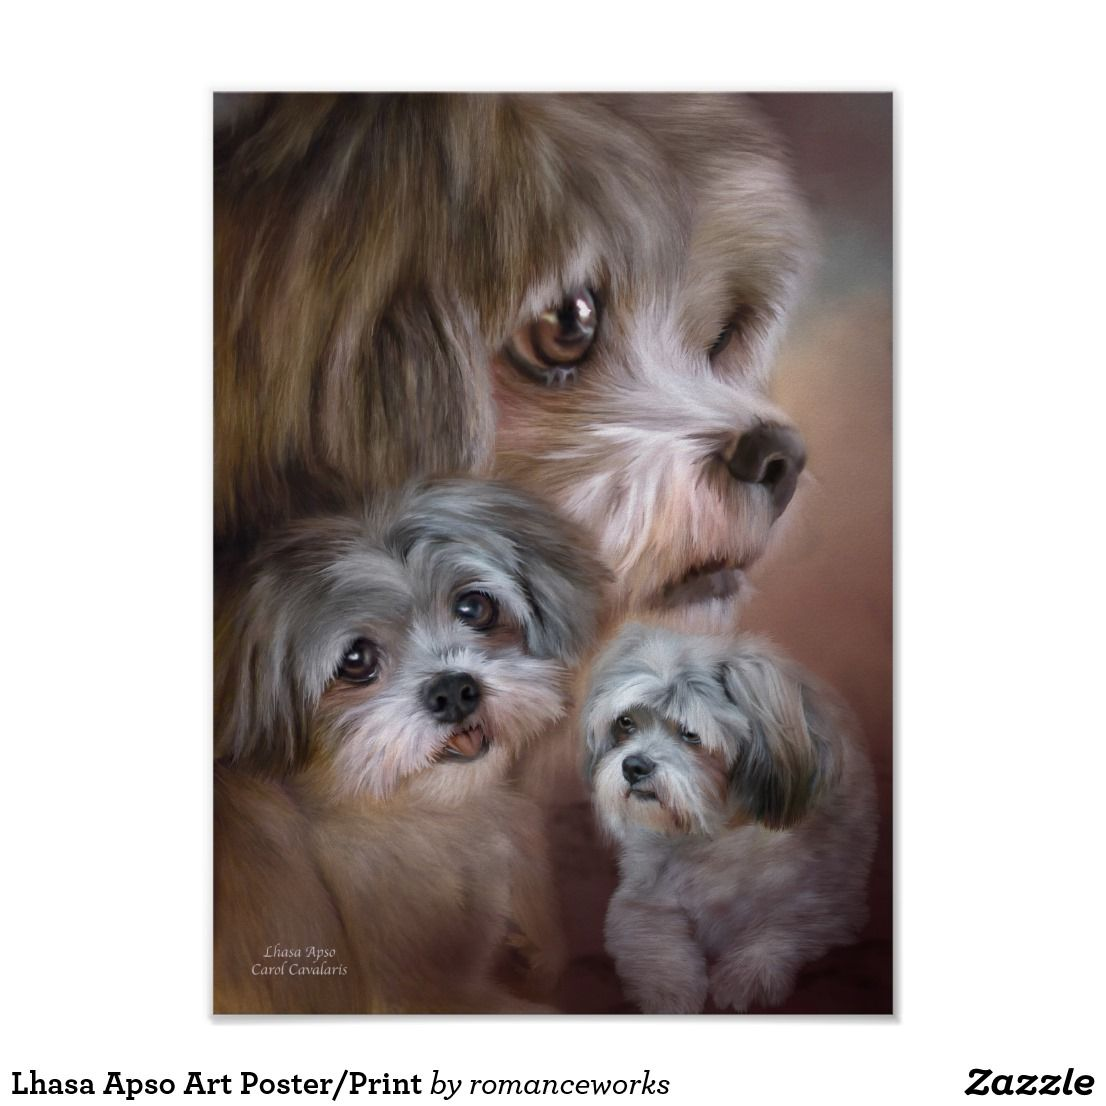 Lhasa Apso Art Poster/Print Poster now 50% off .. These are the cutest little dog. My mom had one ... Spunky  and he sure was hard to catch lived up to his name.